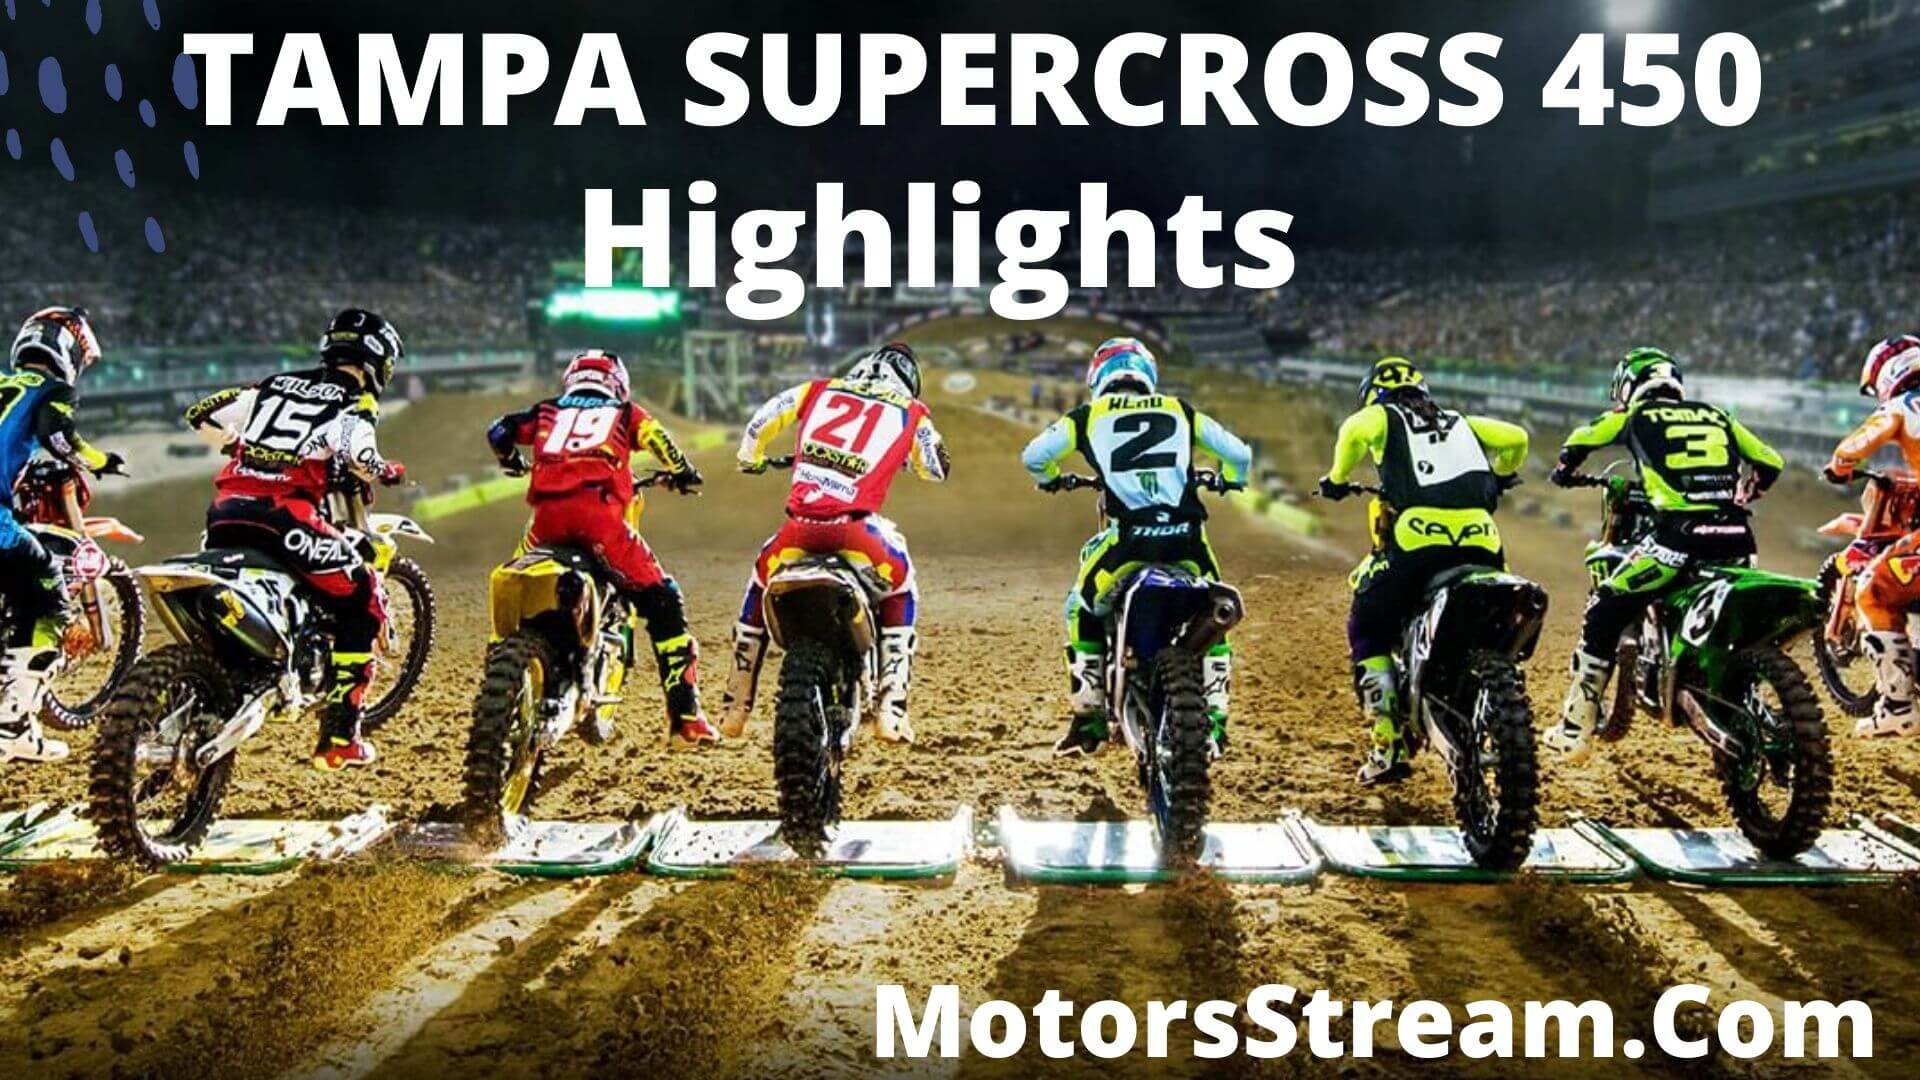 Tampa Supercross 450 Highlights 2020